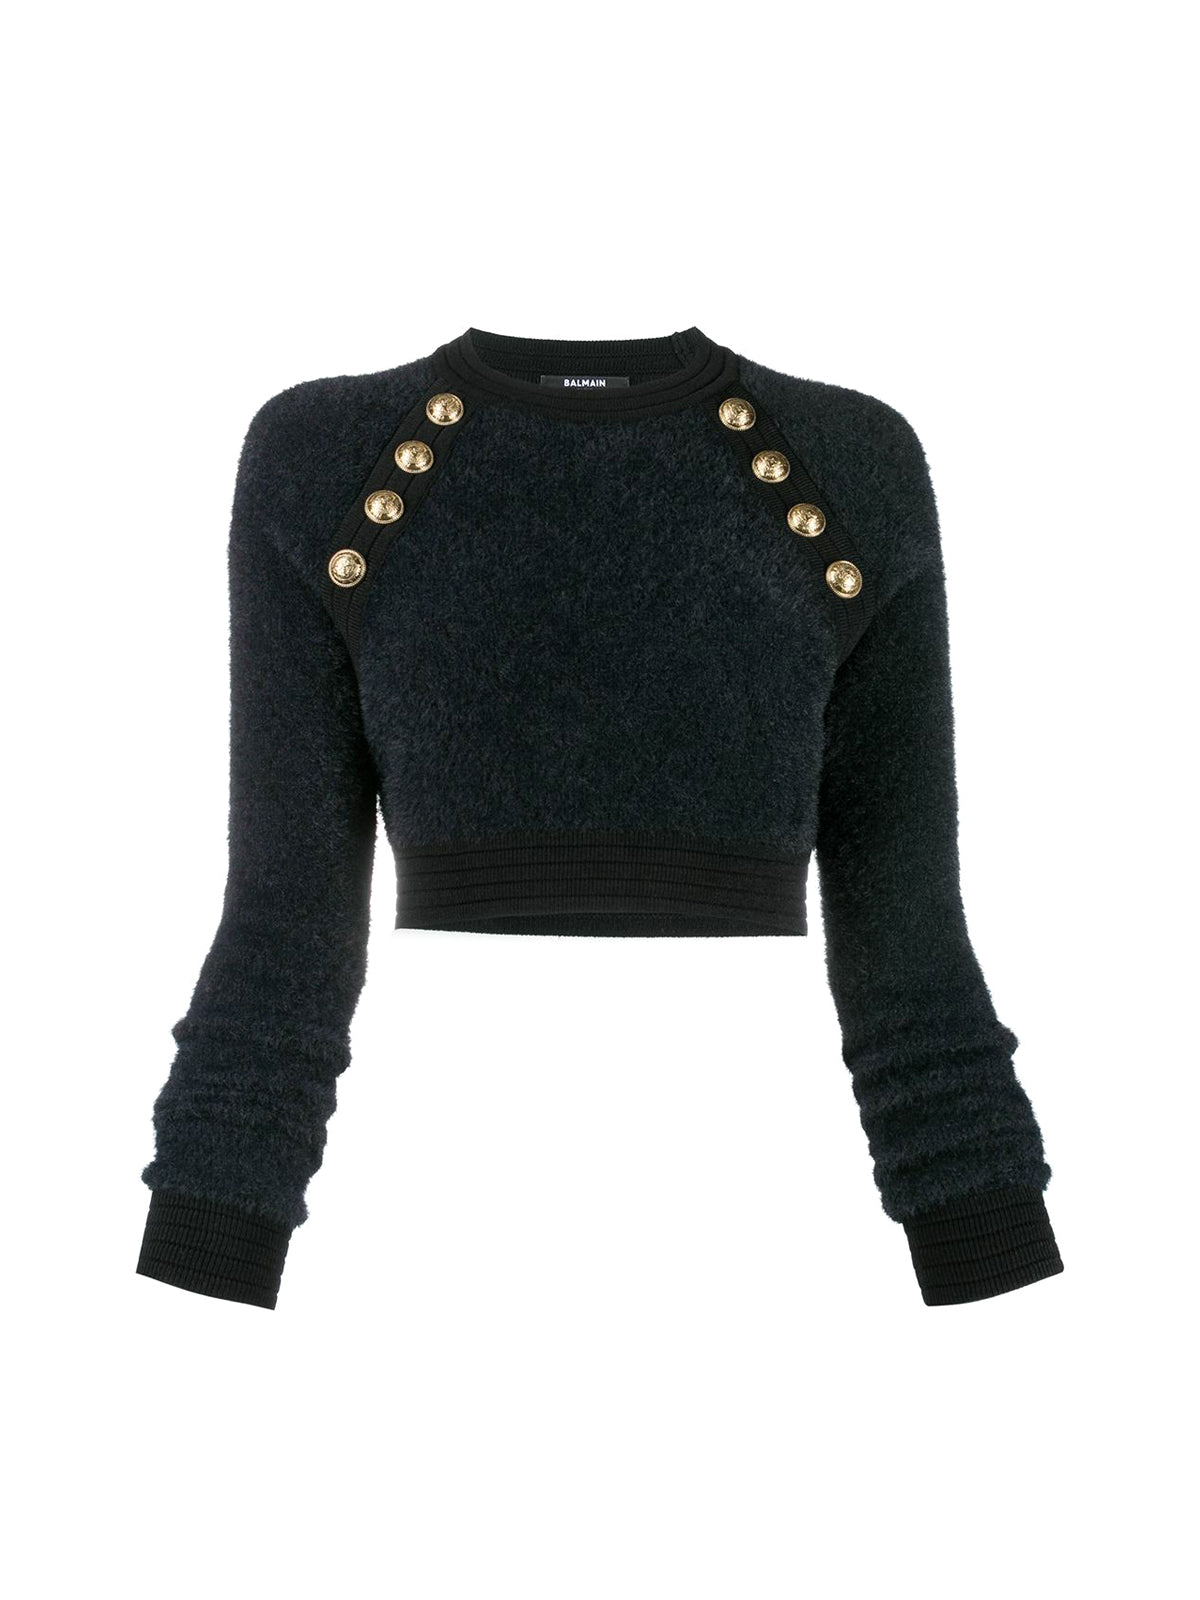 Cropped button-detail knit top